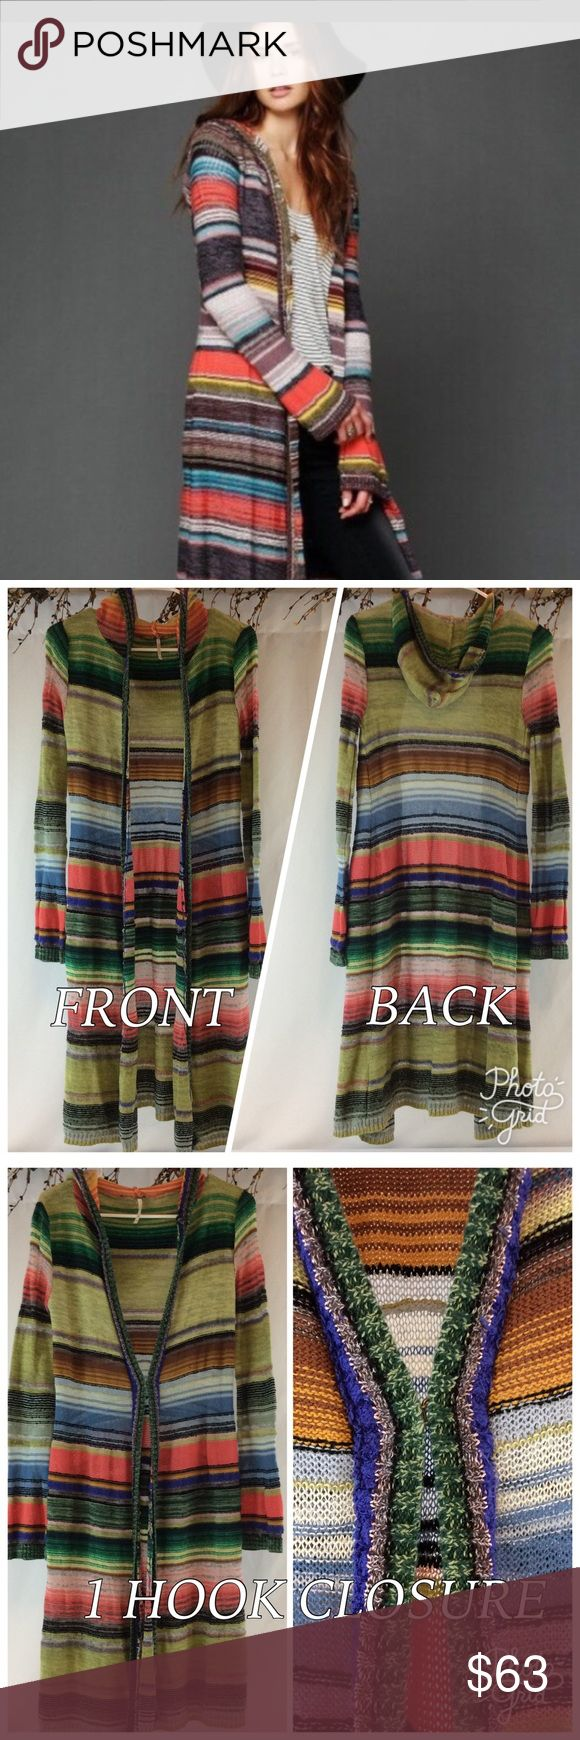 FREE PEOPLE STRIPED LONG SWEATER DUSTER GUC other than a few loose threads that can be fixed and I did sew a larger loose thread part (view 4th pic)! These issues are the reason for the low price! This beautiful duster still has a lot of life left! It's light weight and perfect for those cooler nights at the beach🌸 1st stock pic is for reference, mine is the same just different color! There ONE HOOK CLOSURE, material: 86% cotton/11% rayon/3% other fibers! Free People Sweaters